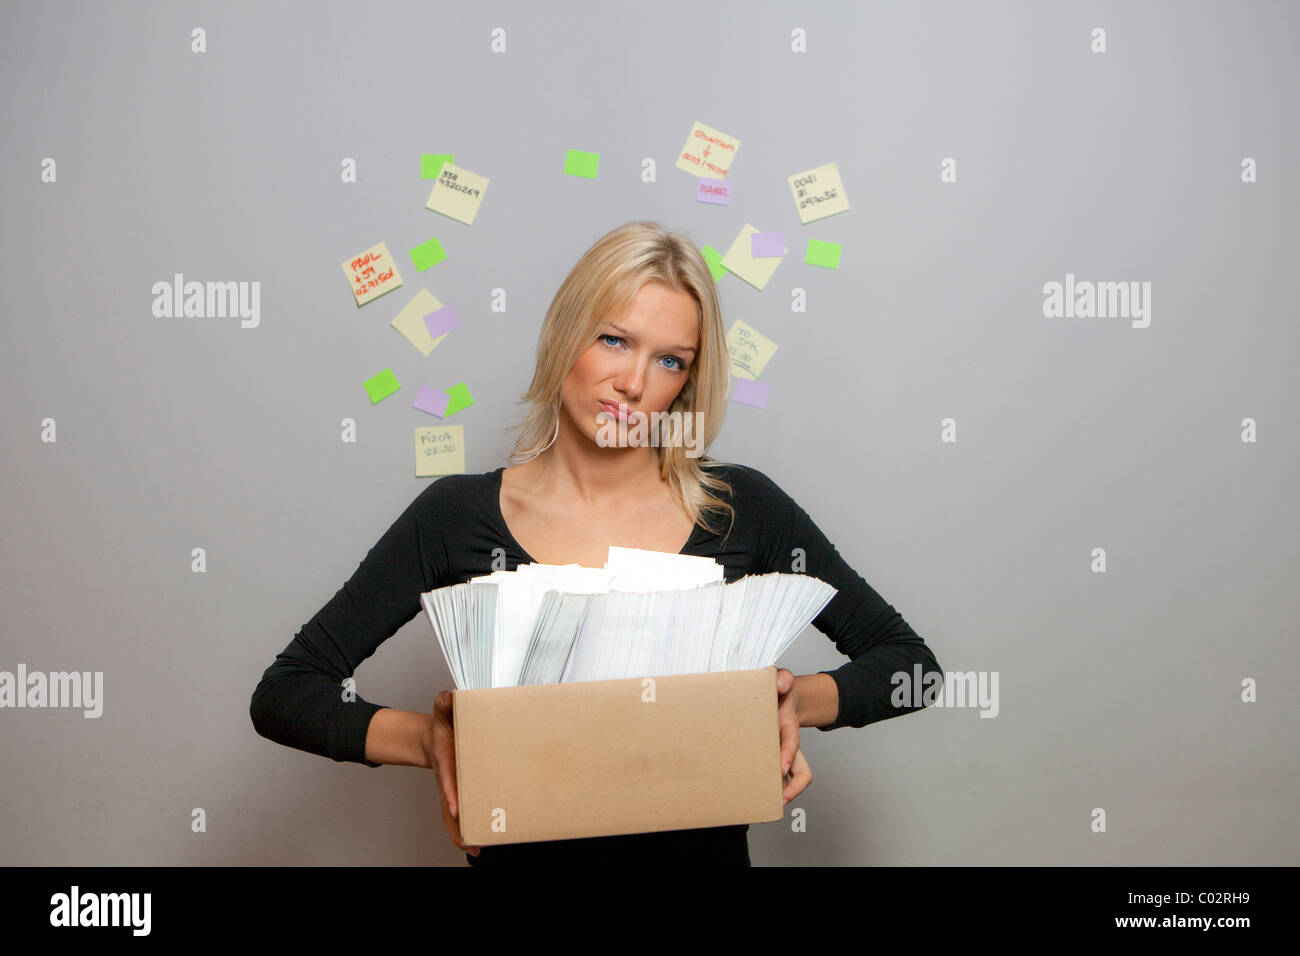 girl lifts a box of envelopes and correspondence with the post it on the wall - Stock Image